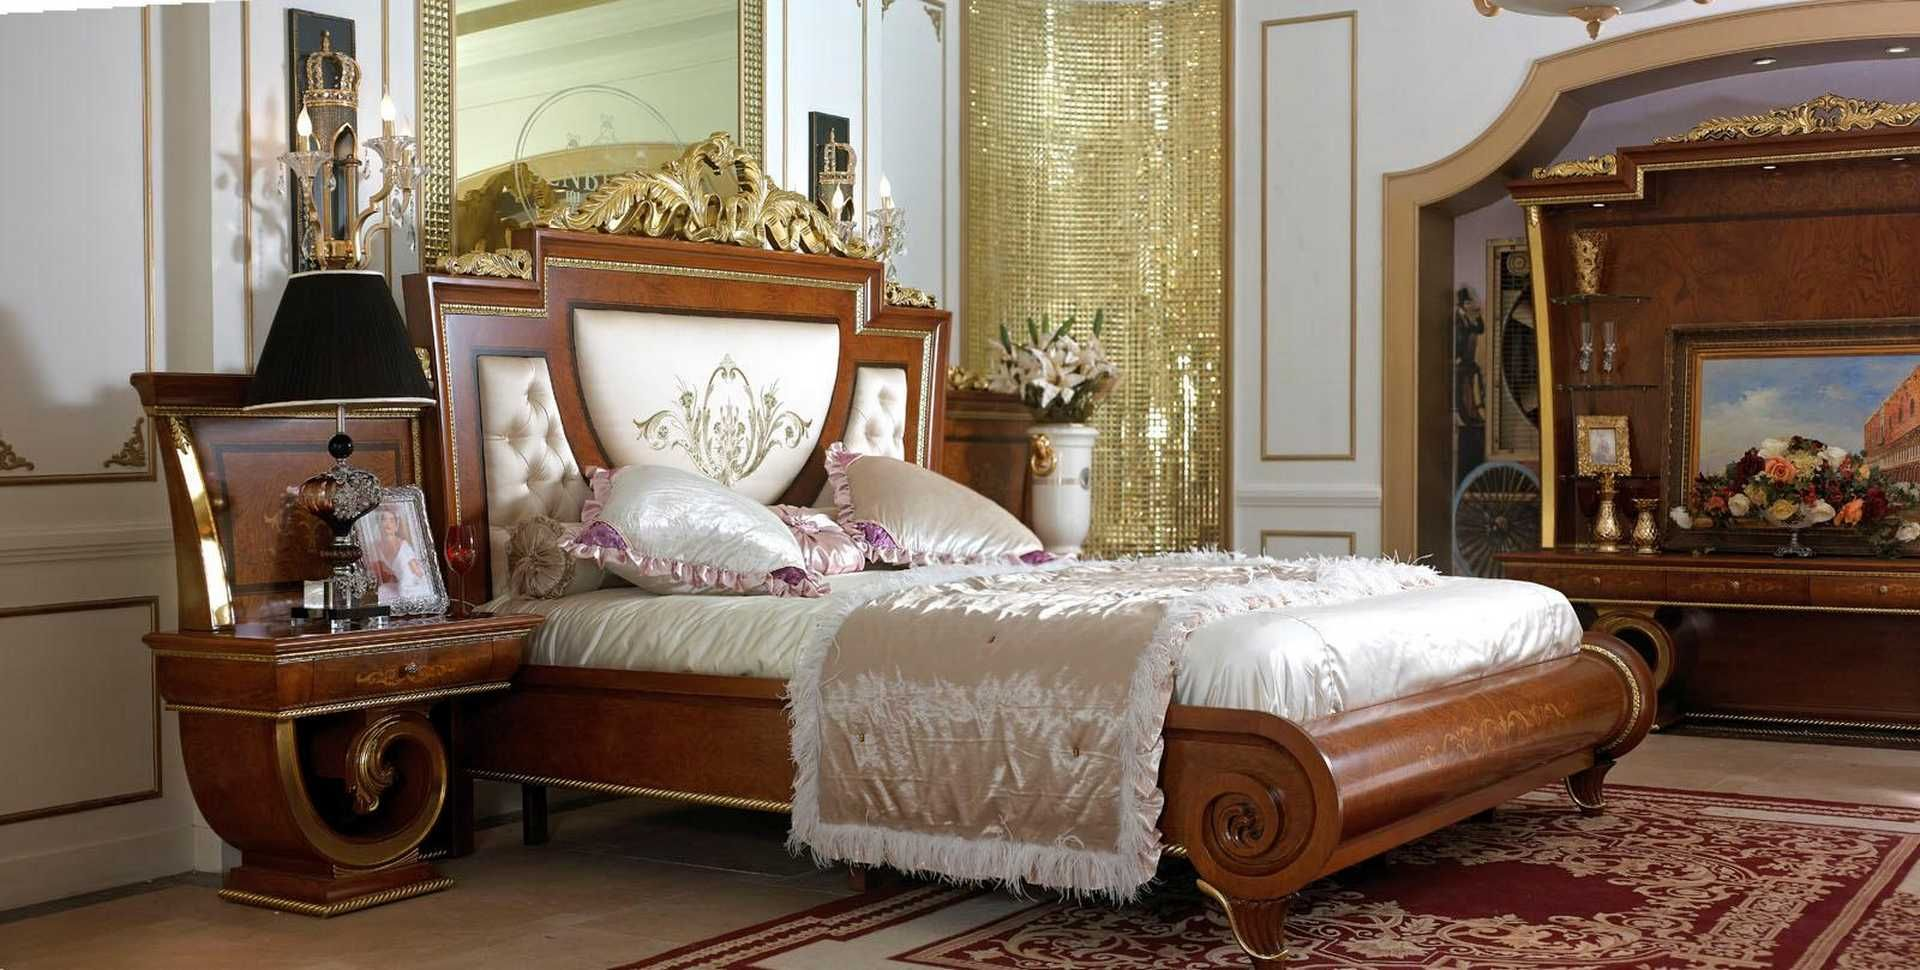 Latest Furniture Design For Bedroom Alluring Pretty Red Oriental Rug Paired With Wooden Bedroom Furniture Decorating Inspiration